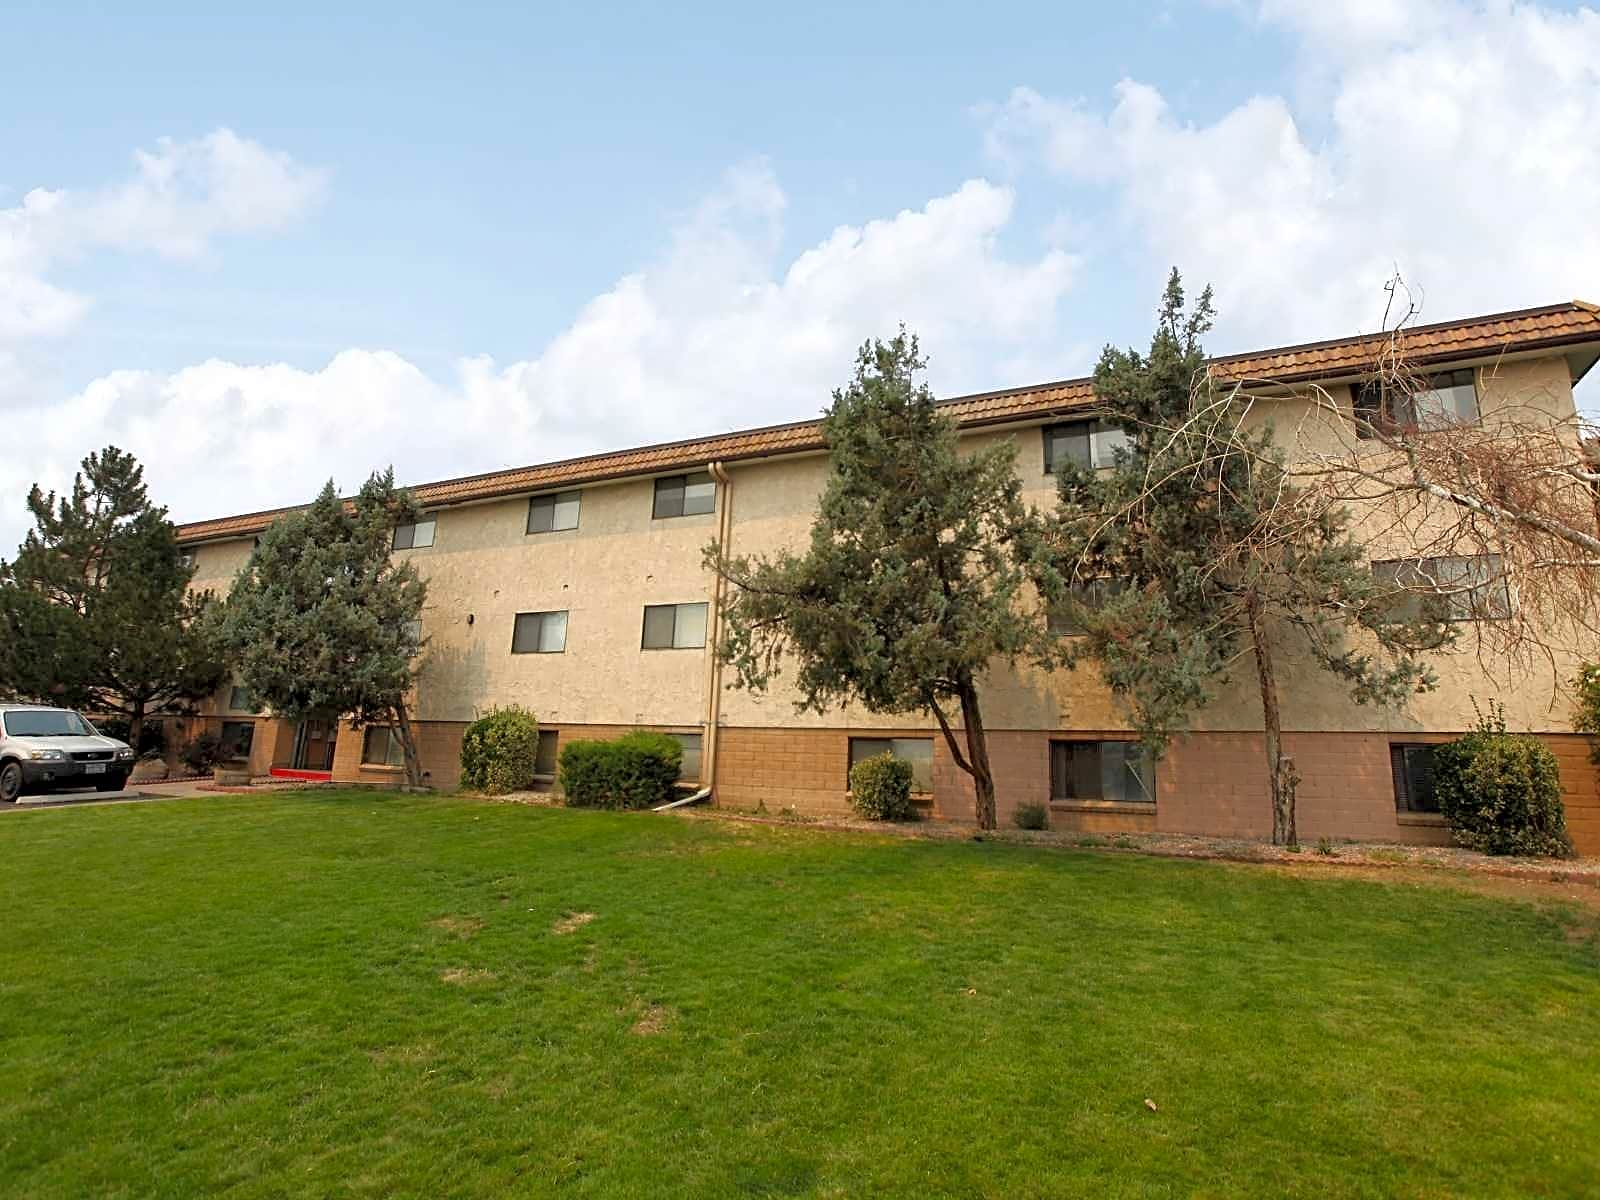 Photo: Reno Apartment for Rent - $699.00 / month; 2 Bd & 1 Ba